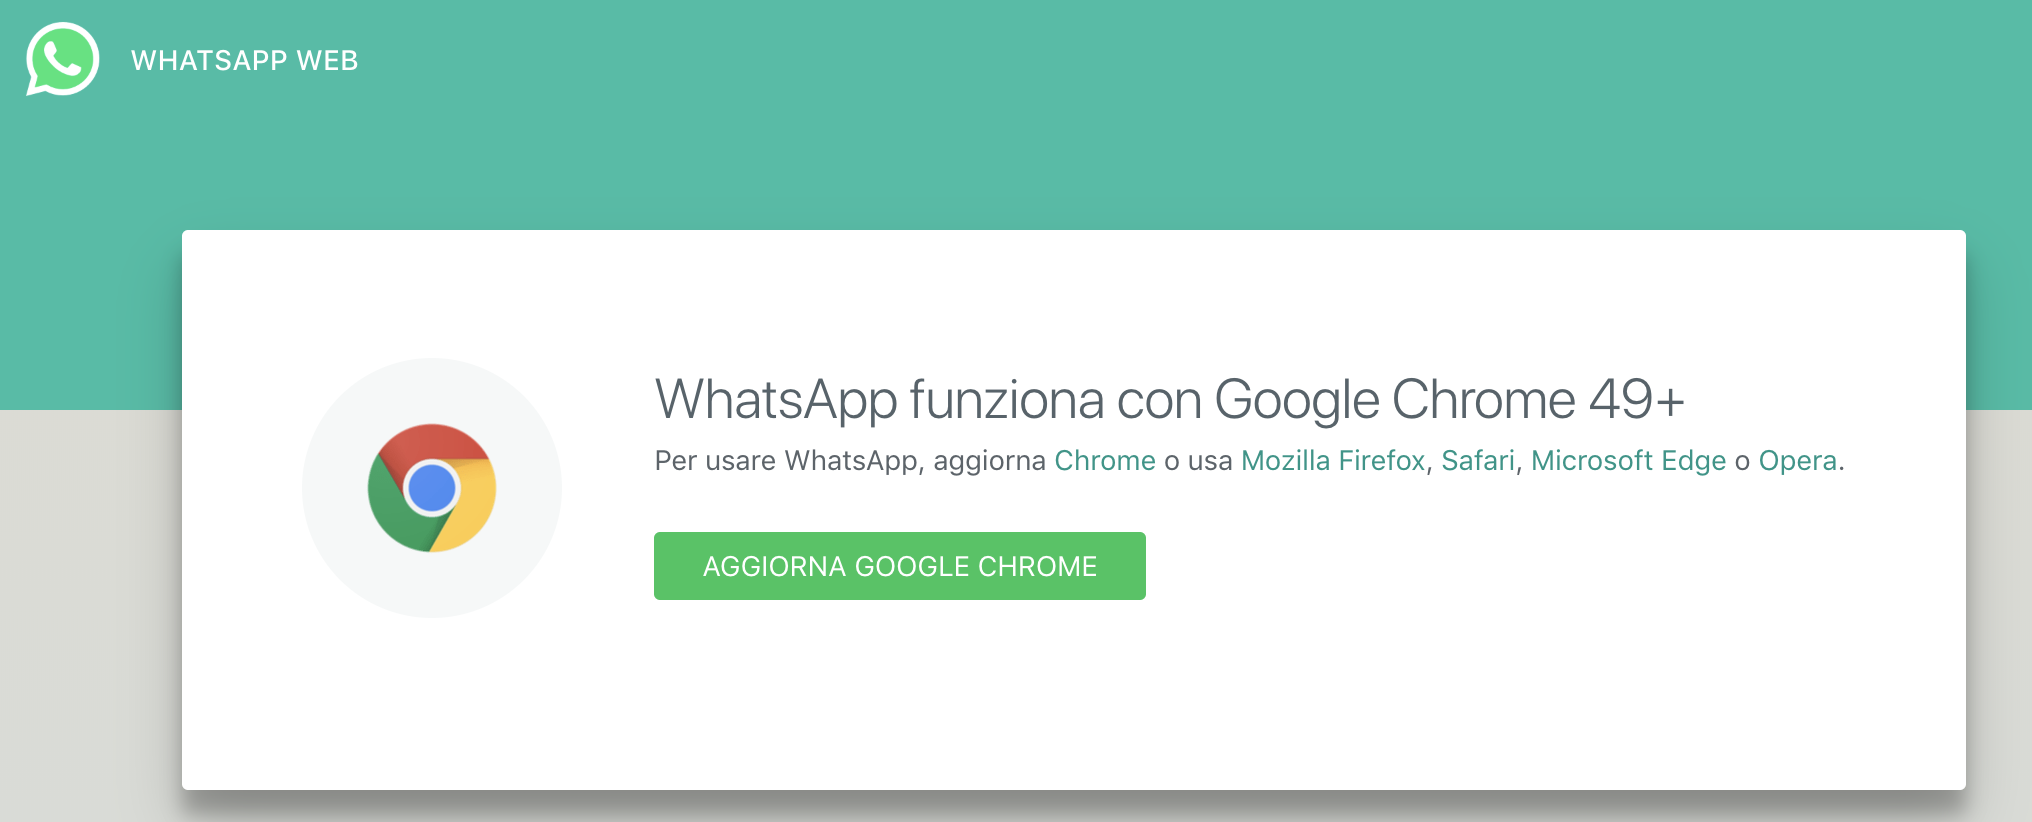 WhatsApp works with Google Chrome 49+ (on Mac OSX after last